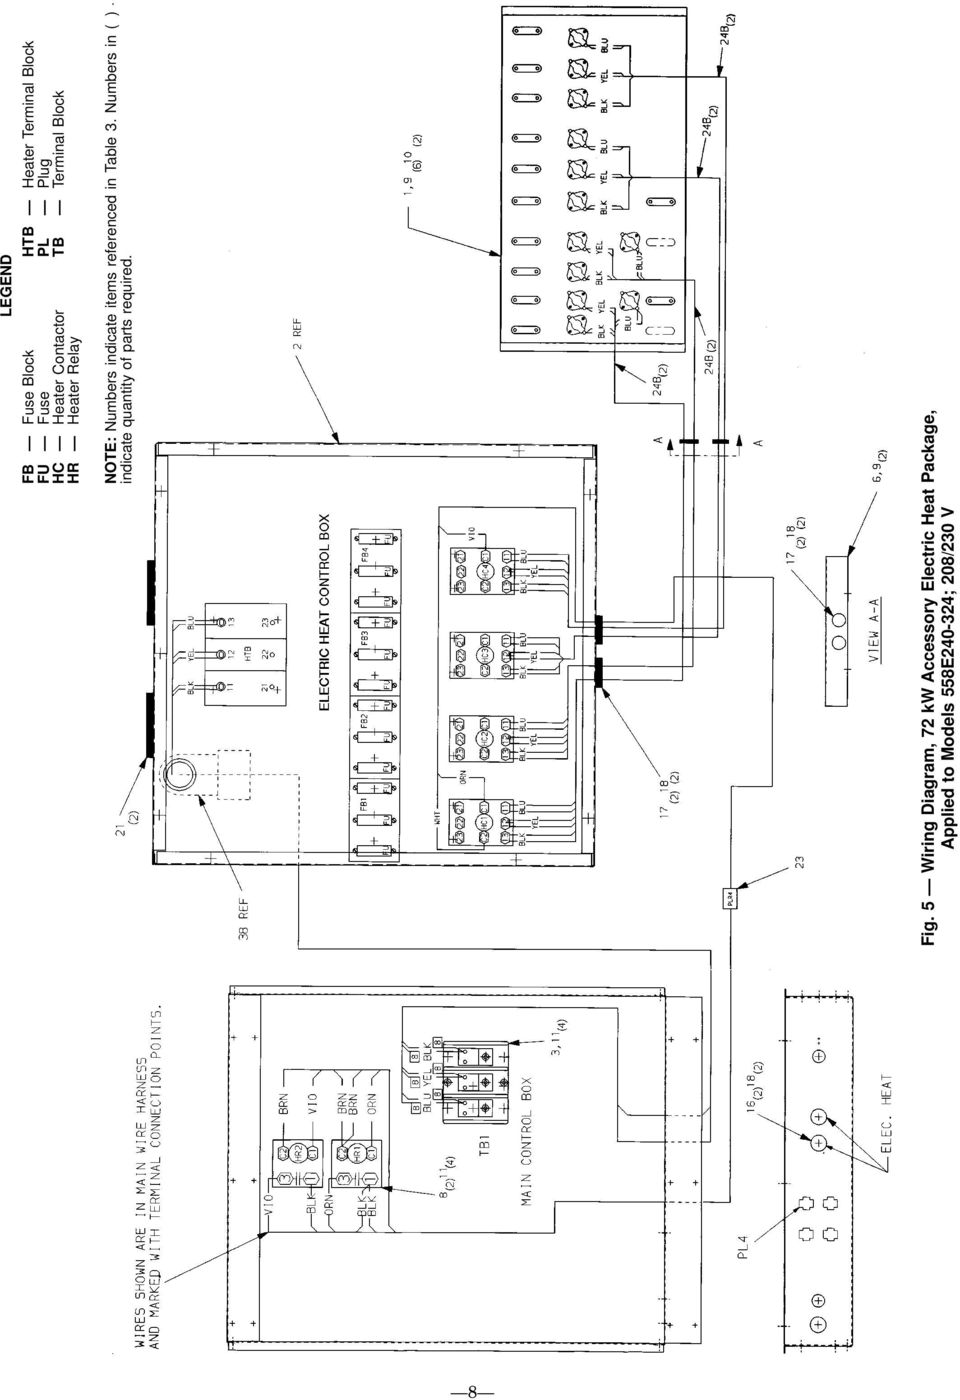 Installation Instructions Pdf 18 Kw Wiring Diagram In Table 3 Numbers Indicate Quantity Of Parts Required Fig